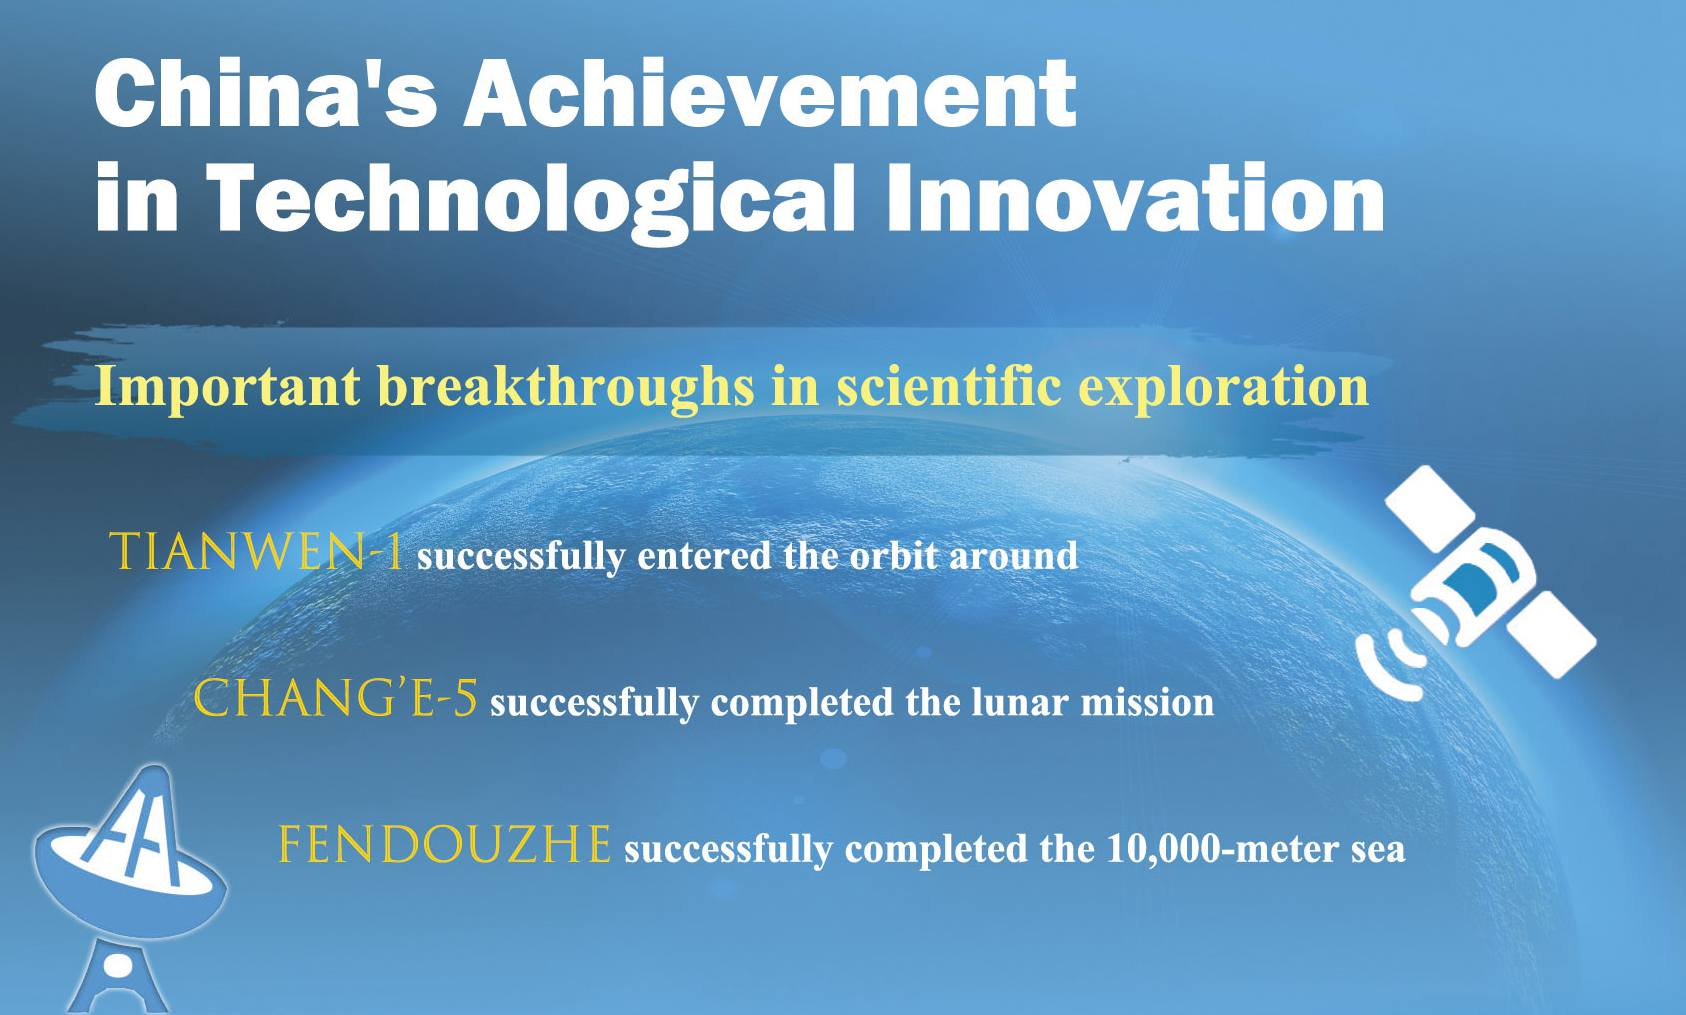 China's achievement in technological innovation